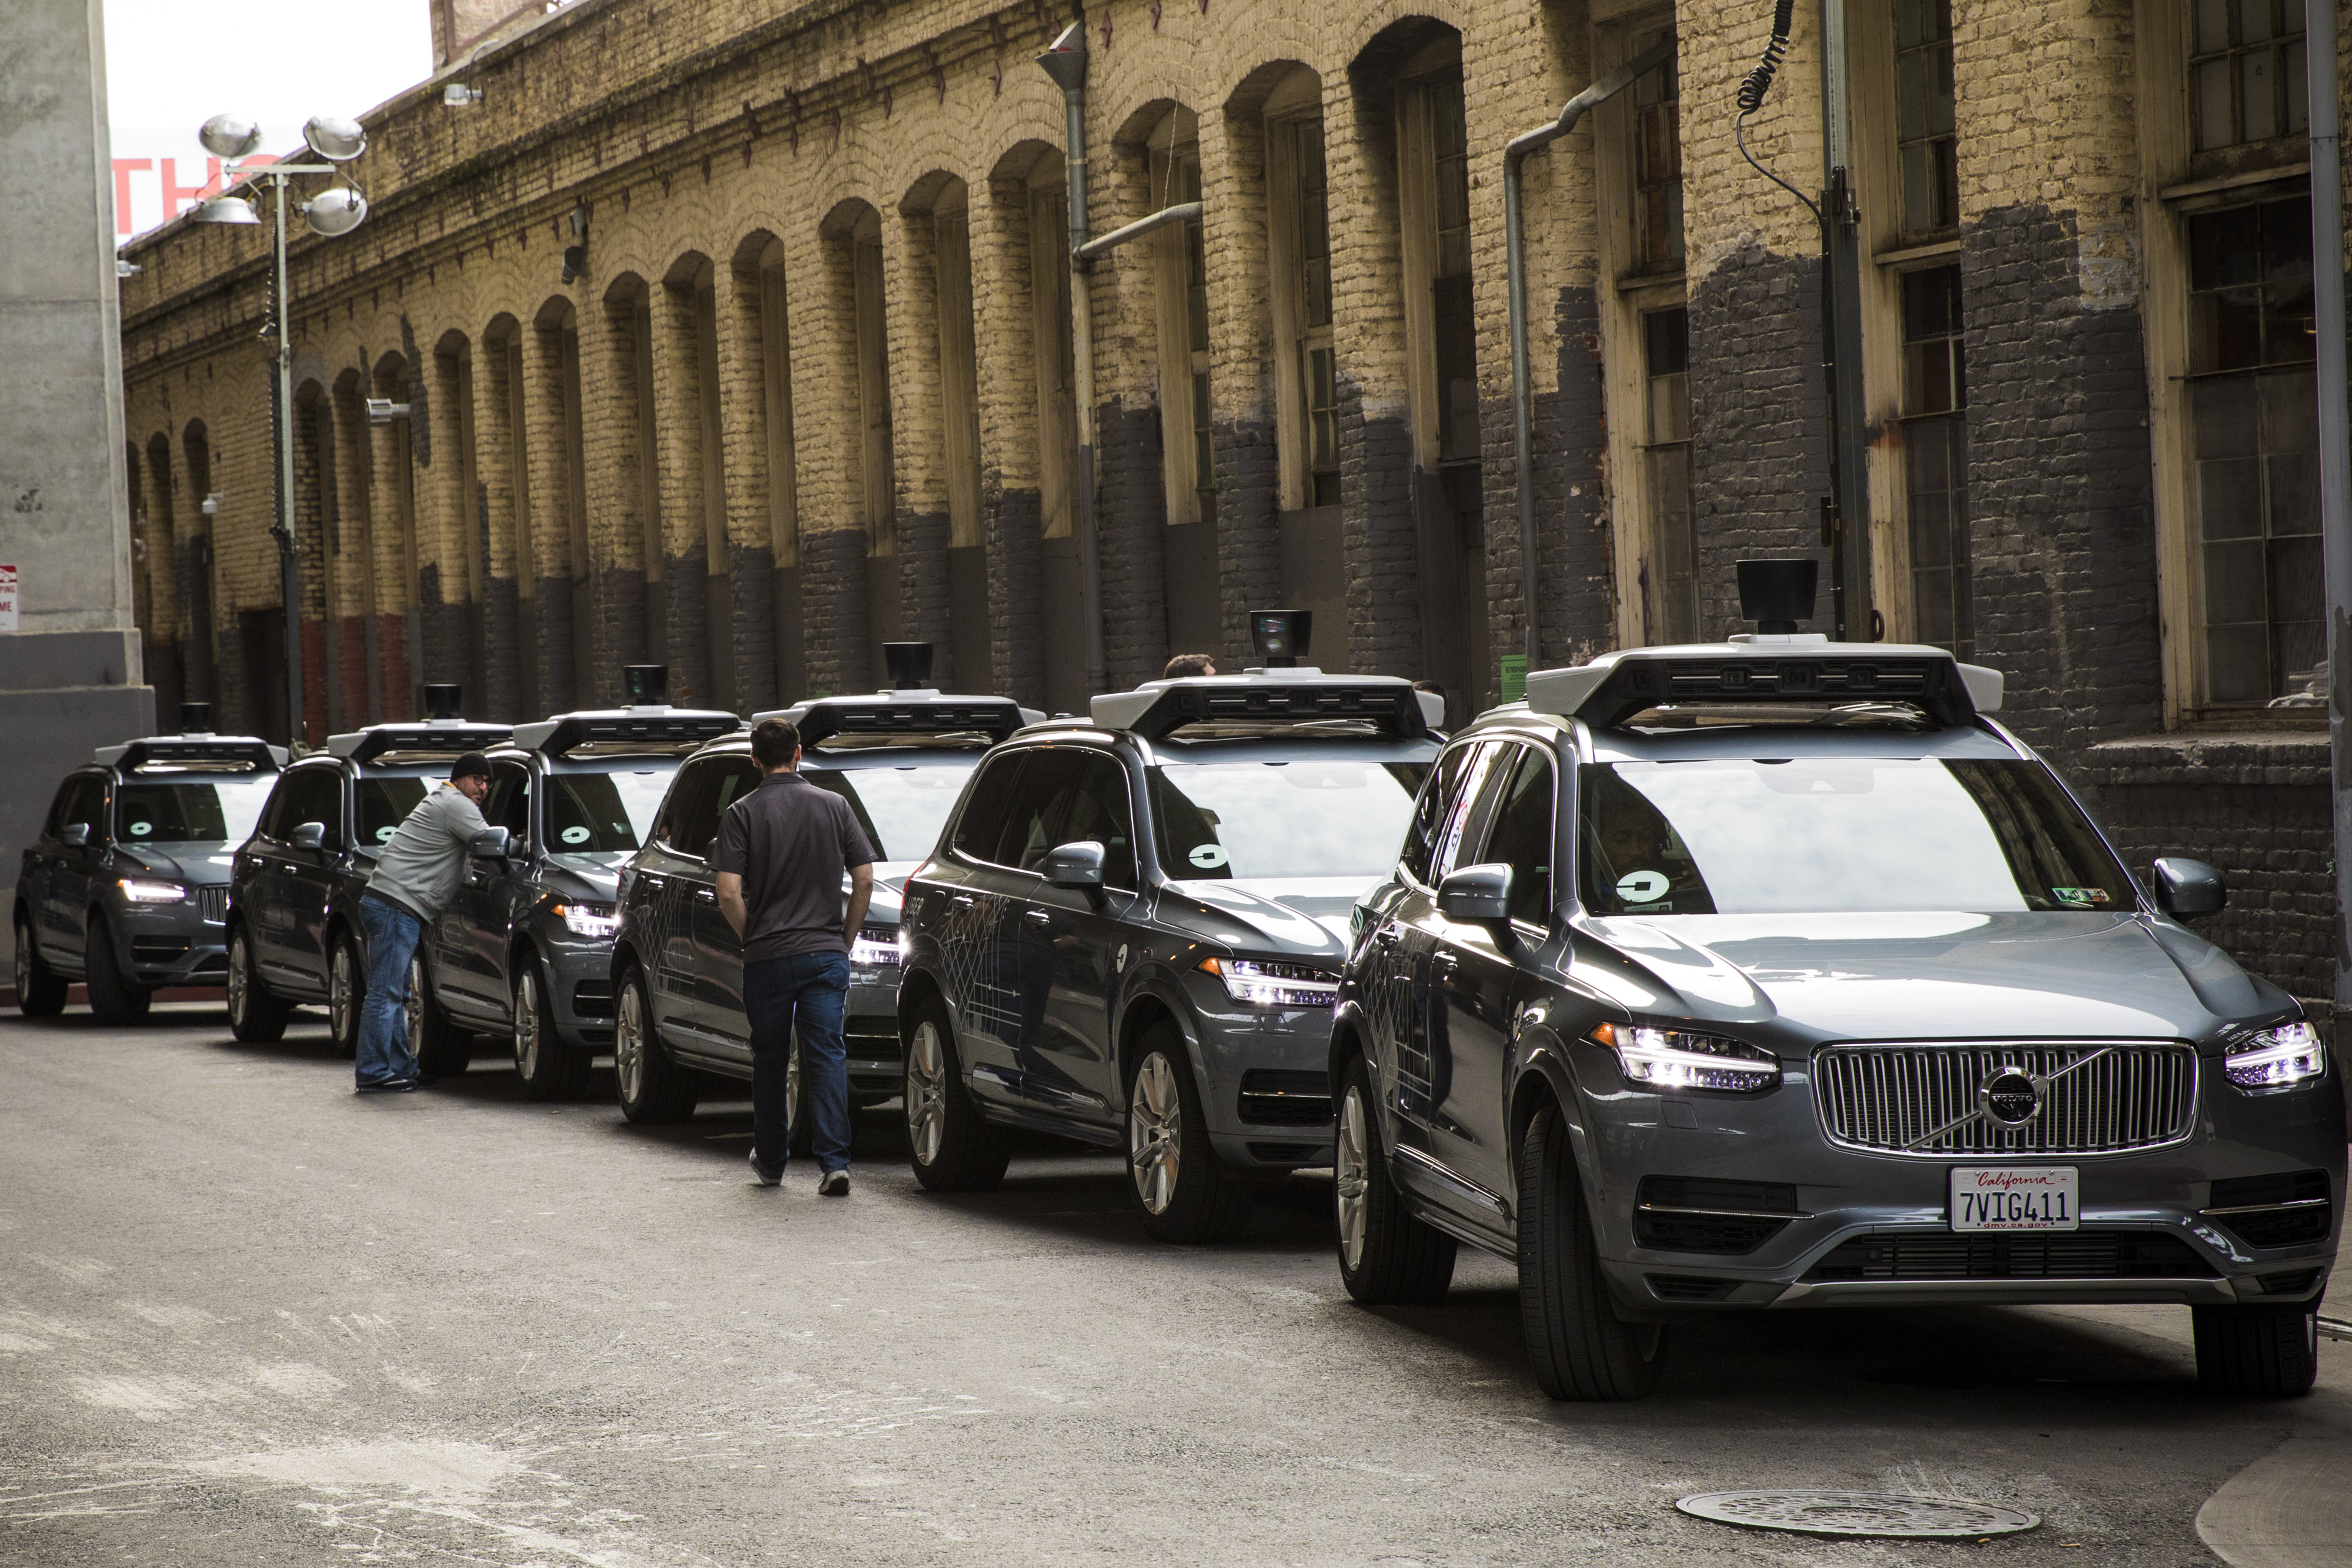 A line of Volvo XC90 crossover SUVs, modified by Uber to function as self-driving cars.